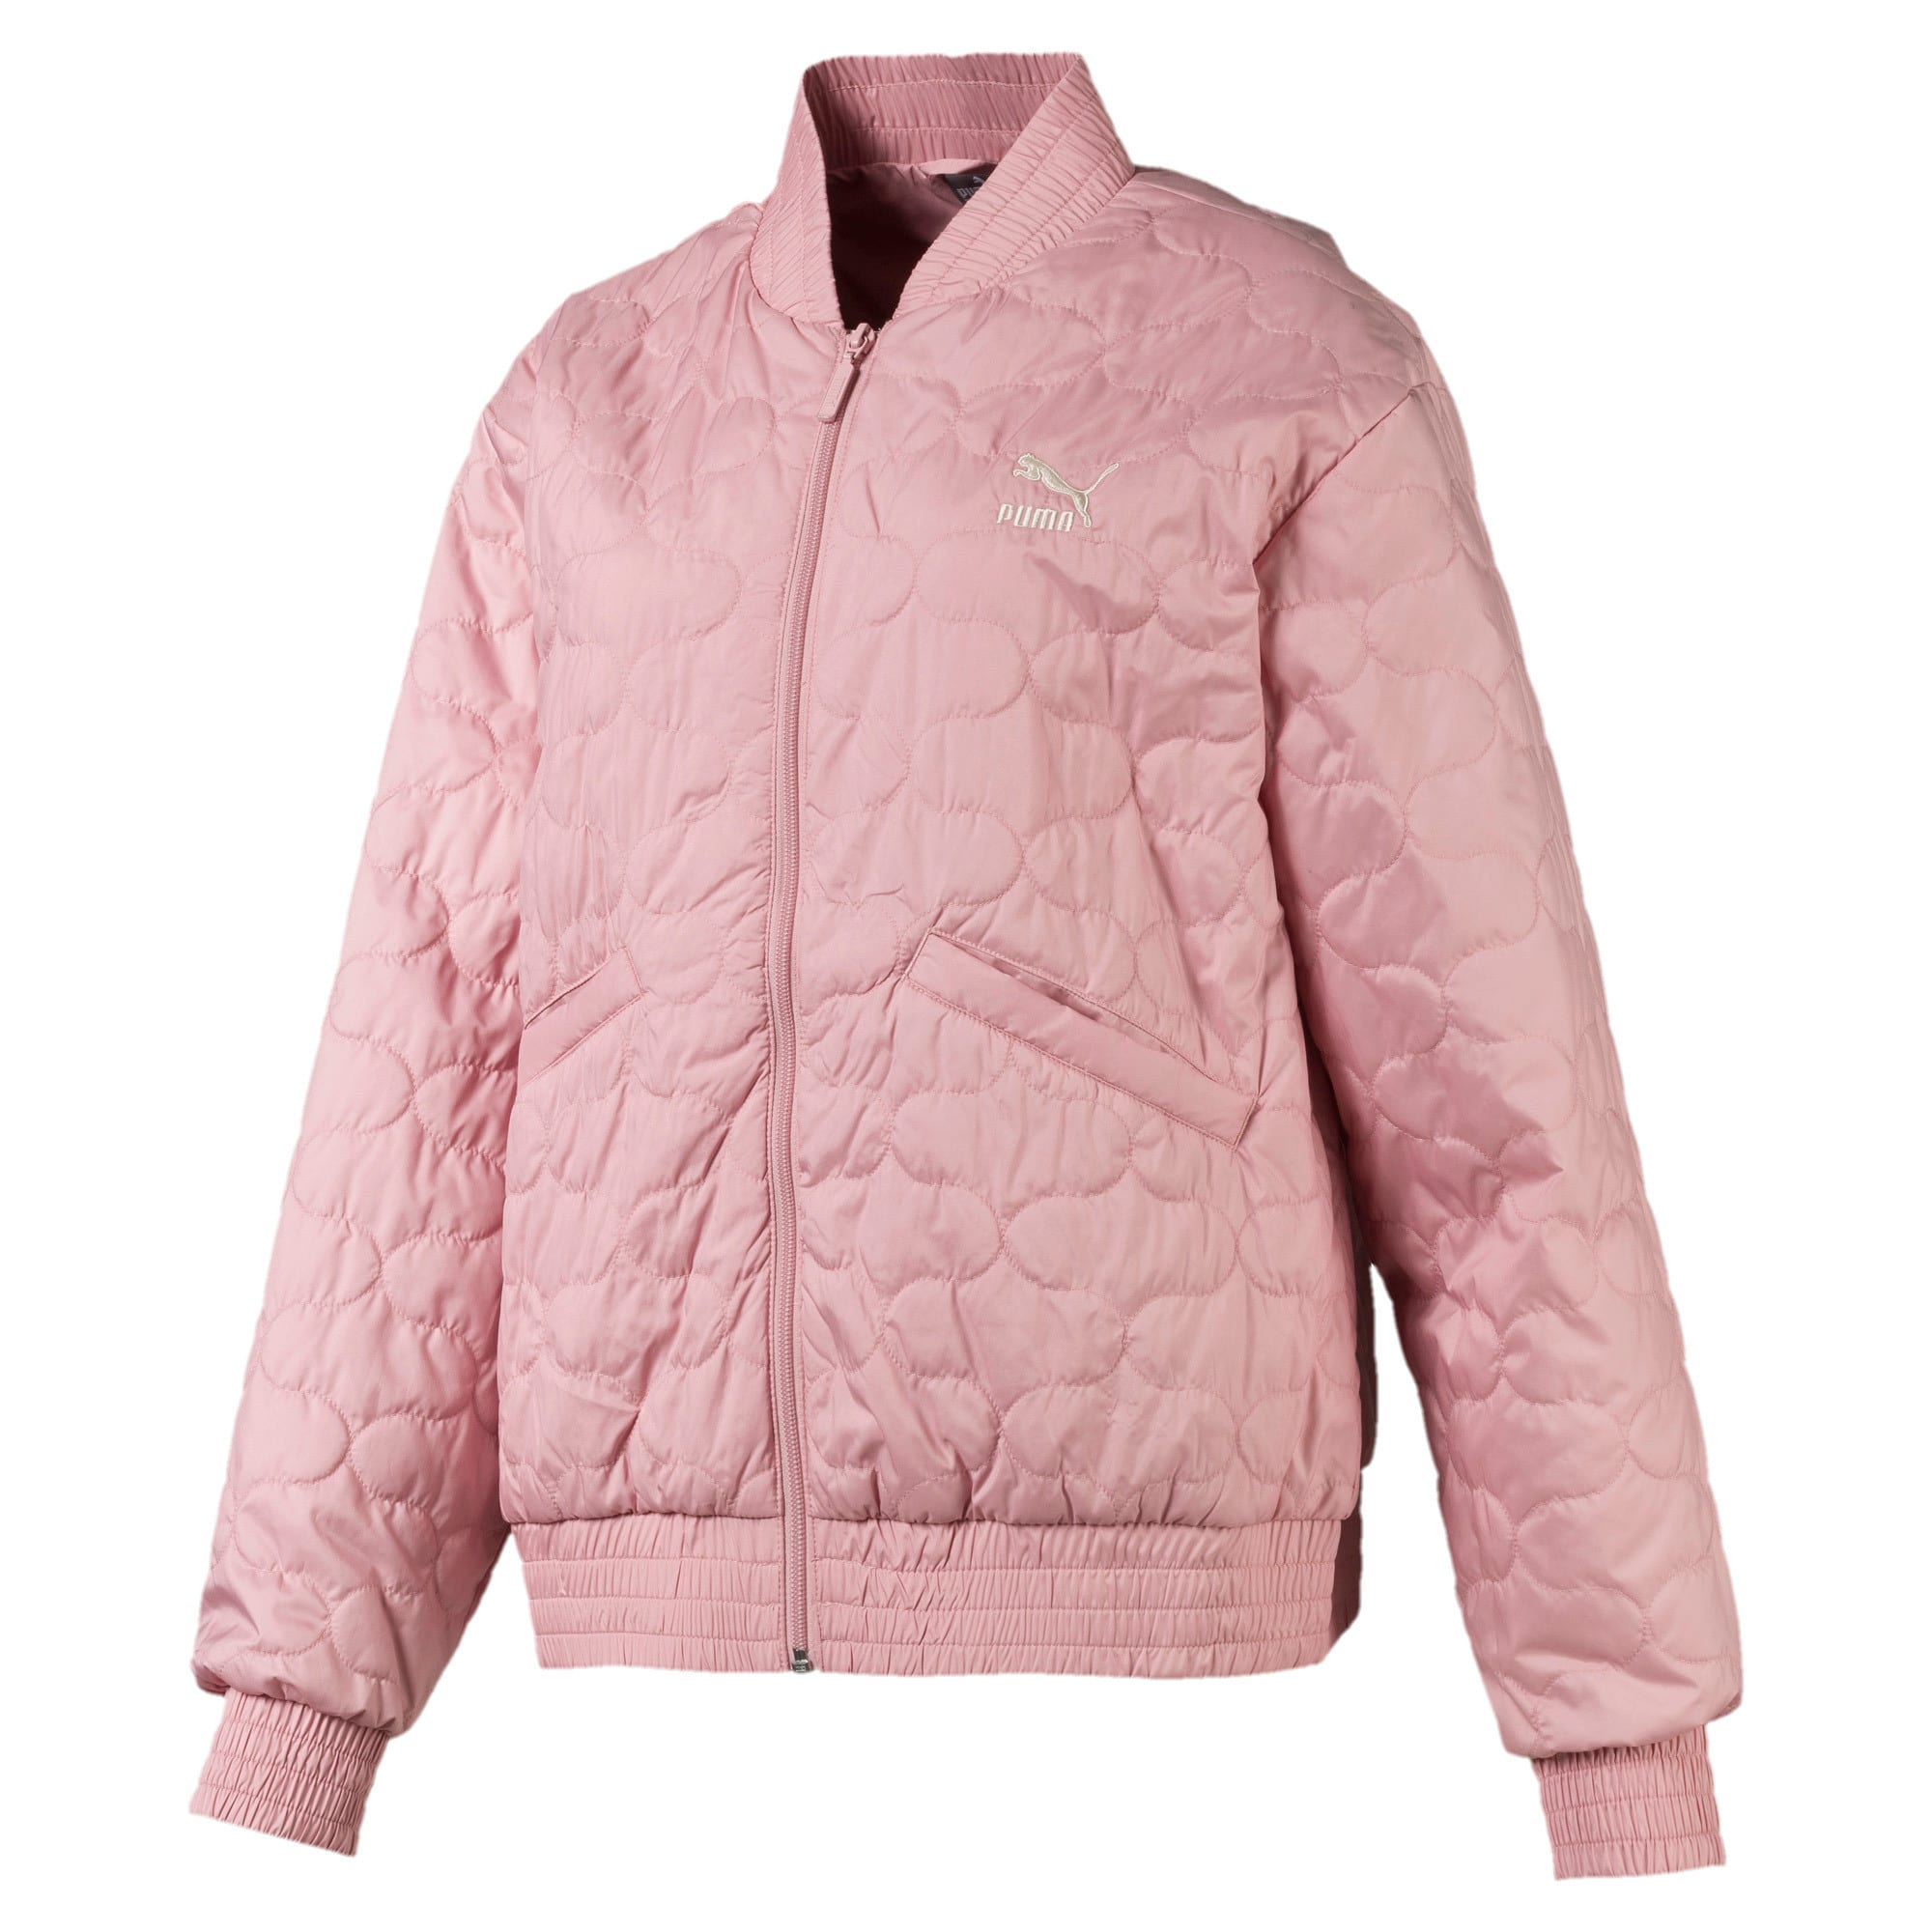 Thumbnail 1 of Damen Gewebte Bomberjacke, Bridal Rose, medium